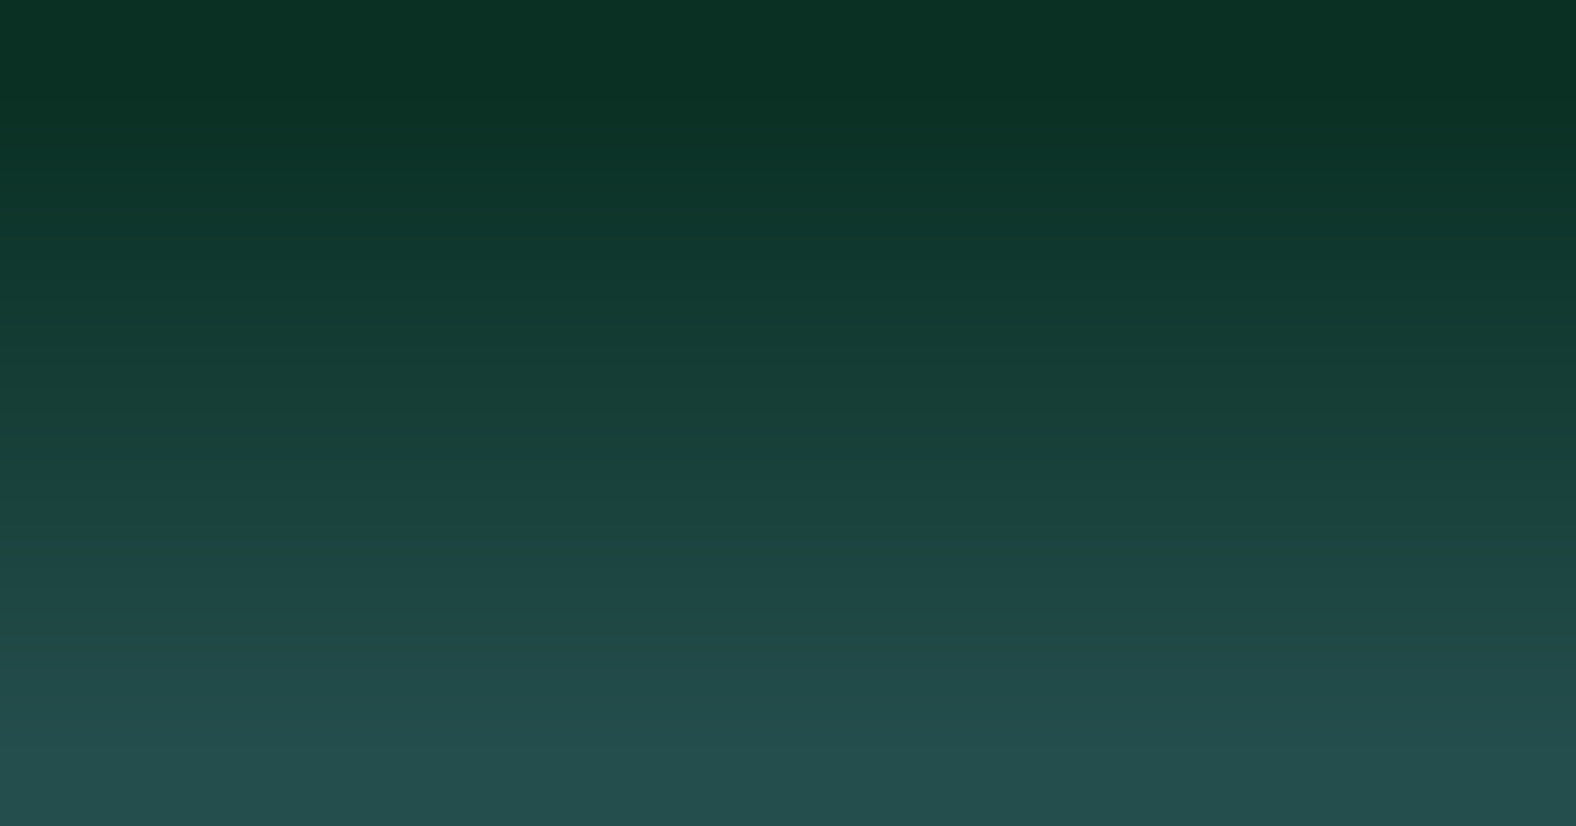 Ninja Dark Green Gradient UI Background